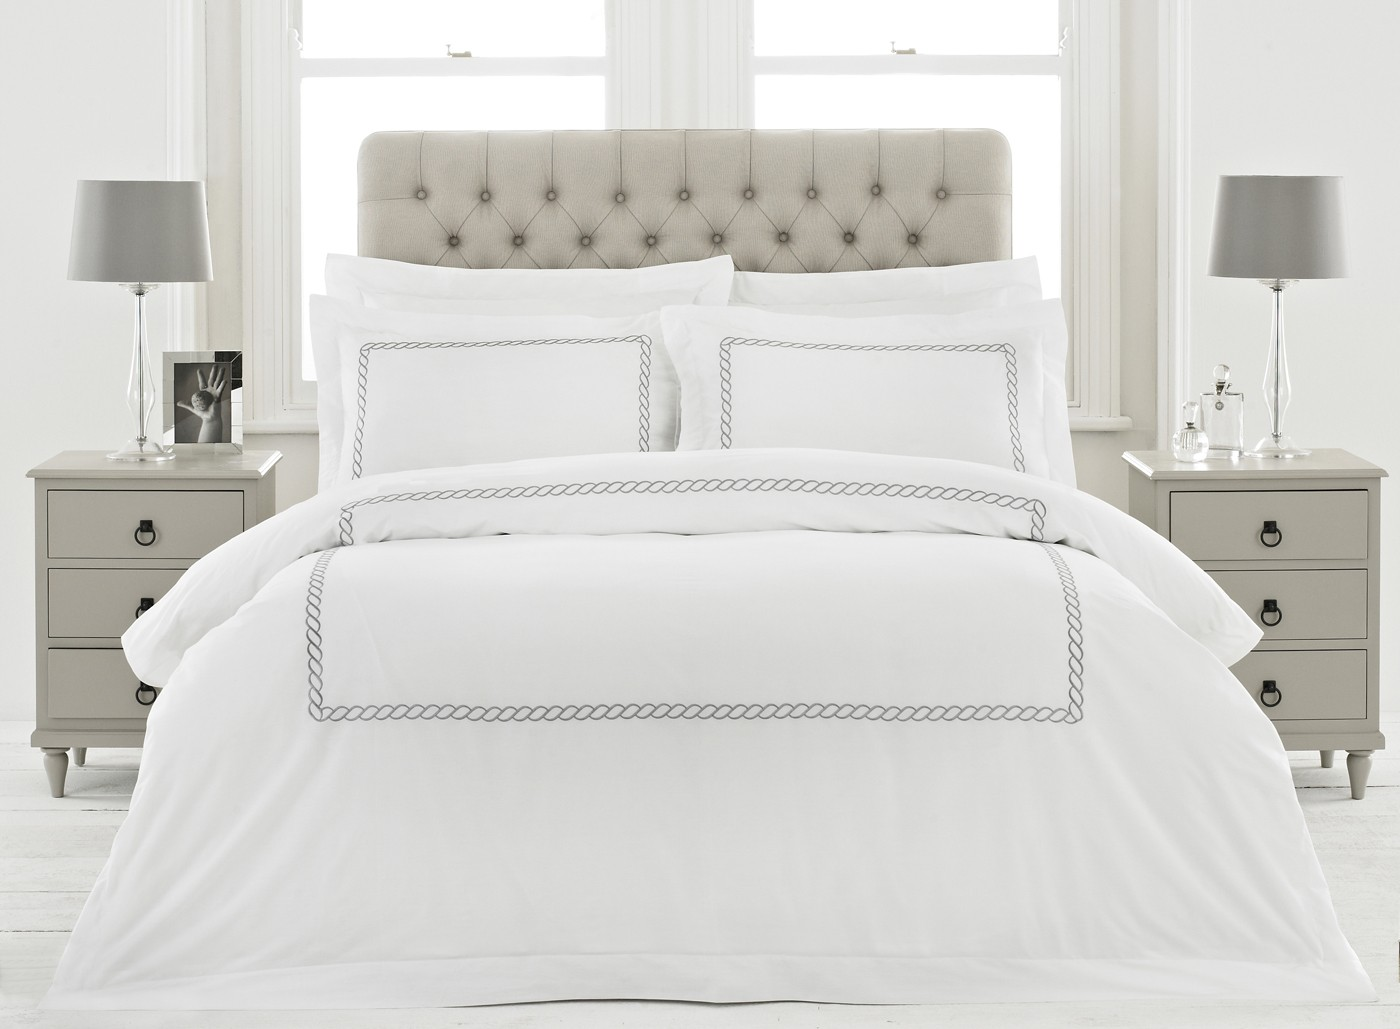 The Home Furnishings Company 100% Cotton Cleopatra White/Silver Duvet Set